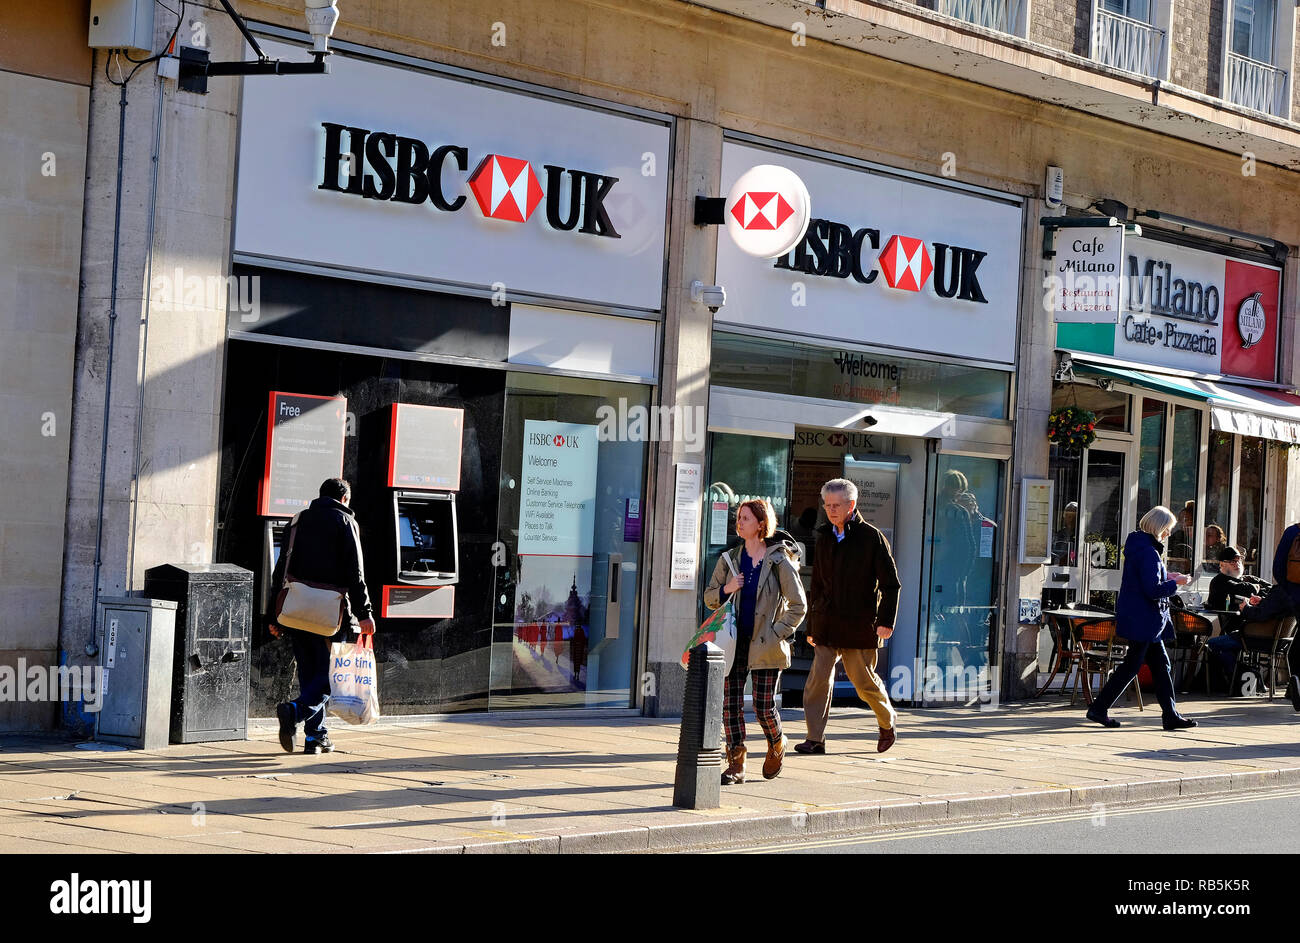 hsbc bank branch, cambridge city centre, england Stock Photo